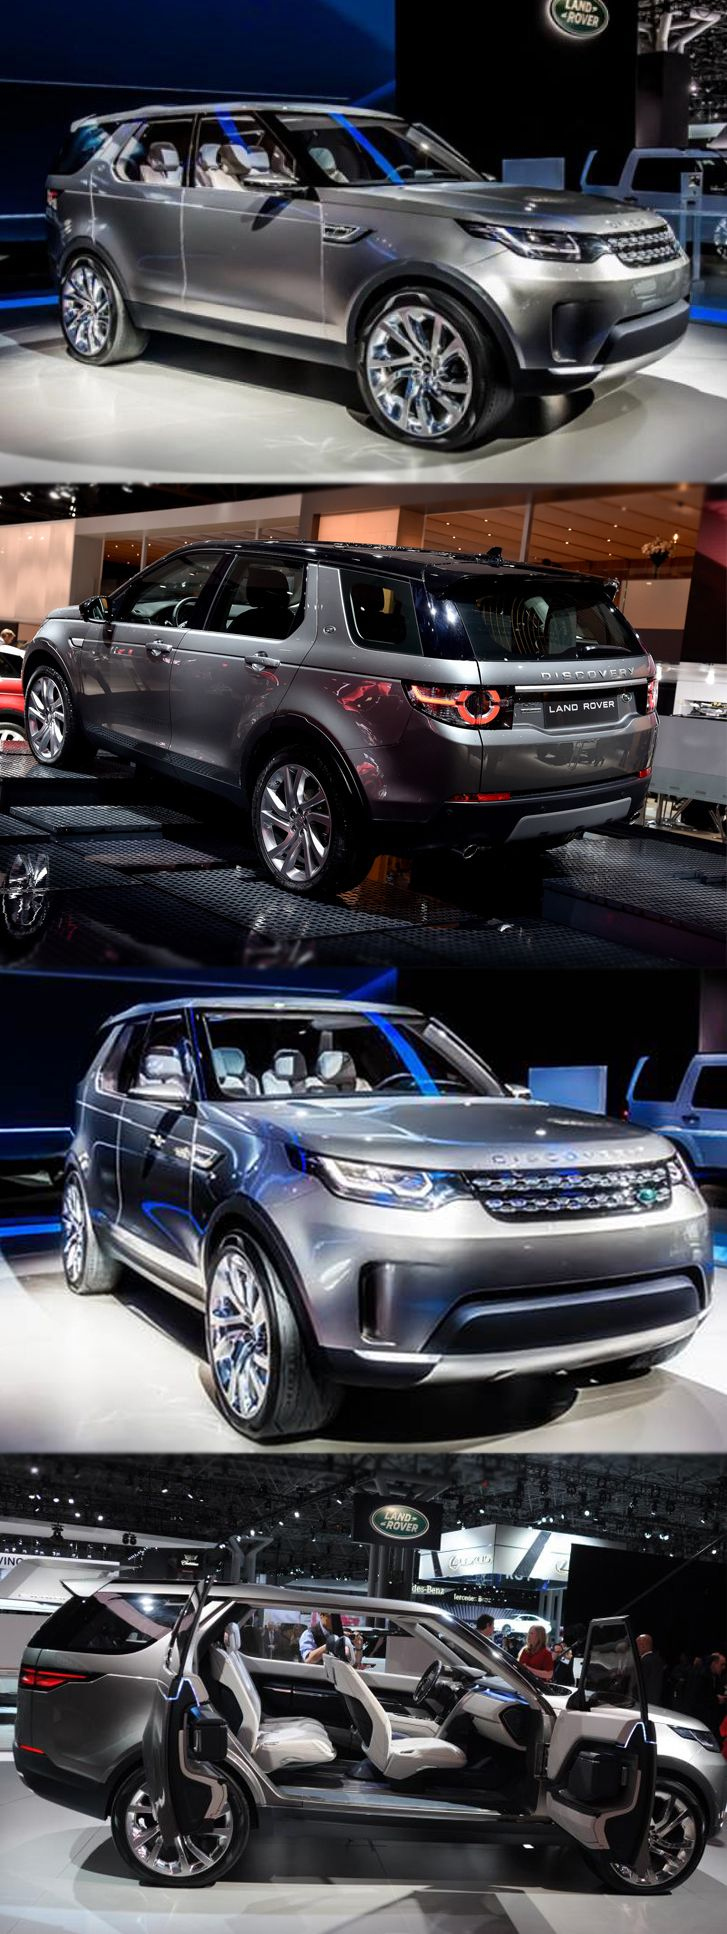 land rent car miami landrover luxury sport range lease rover convertible cabriolet hire aaa evoque rental